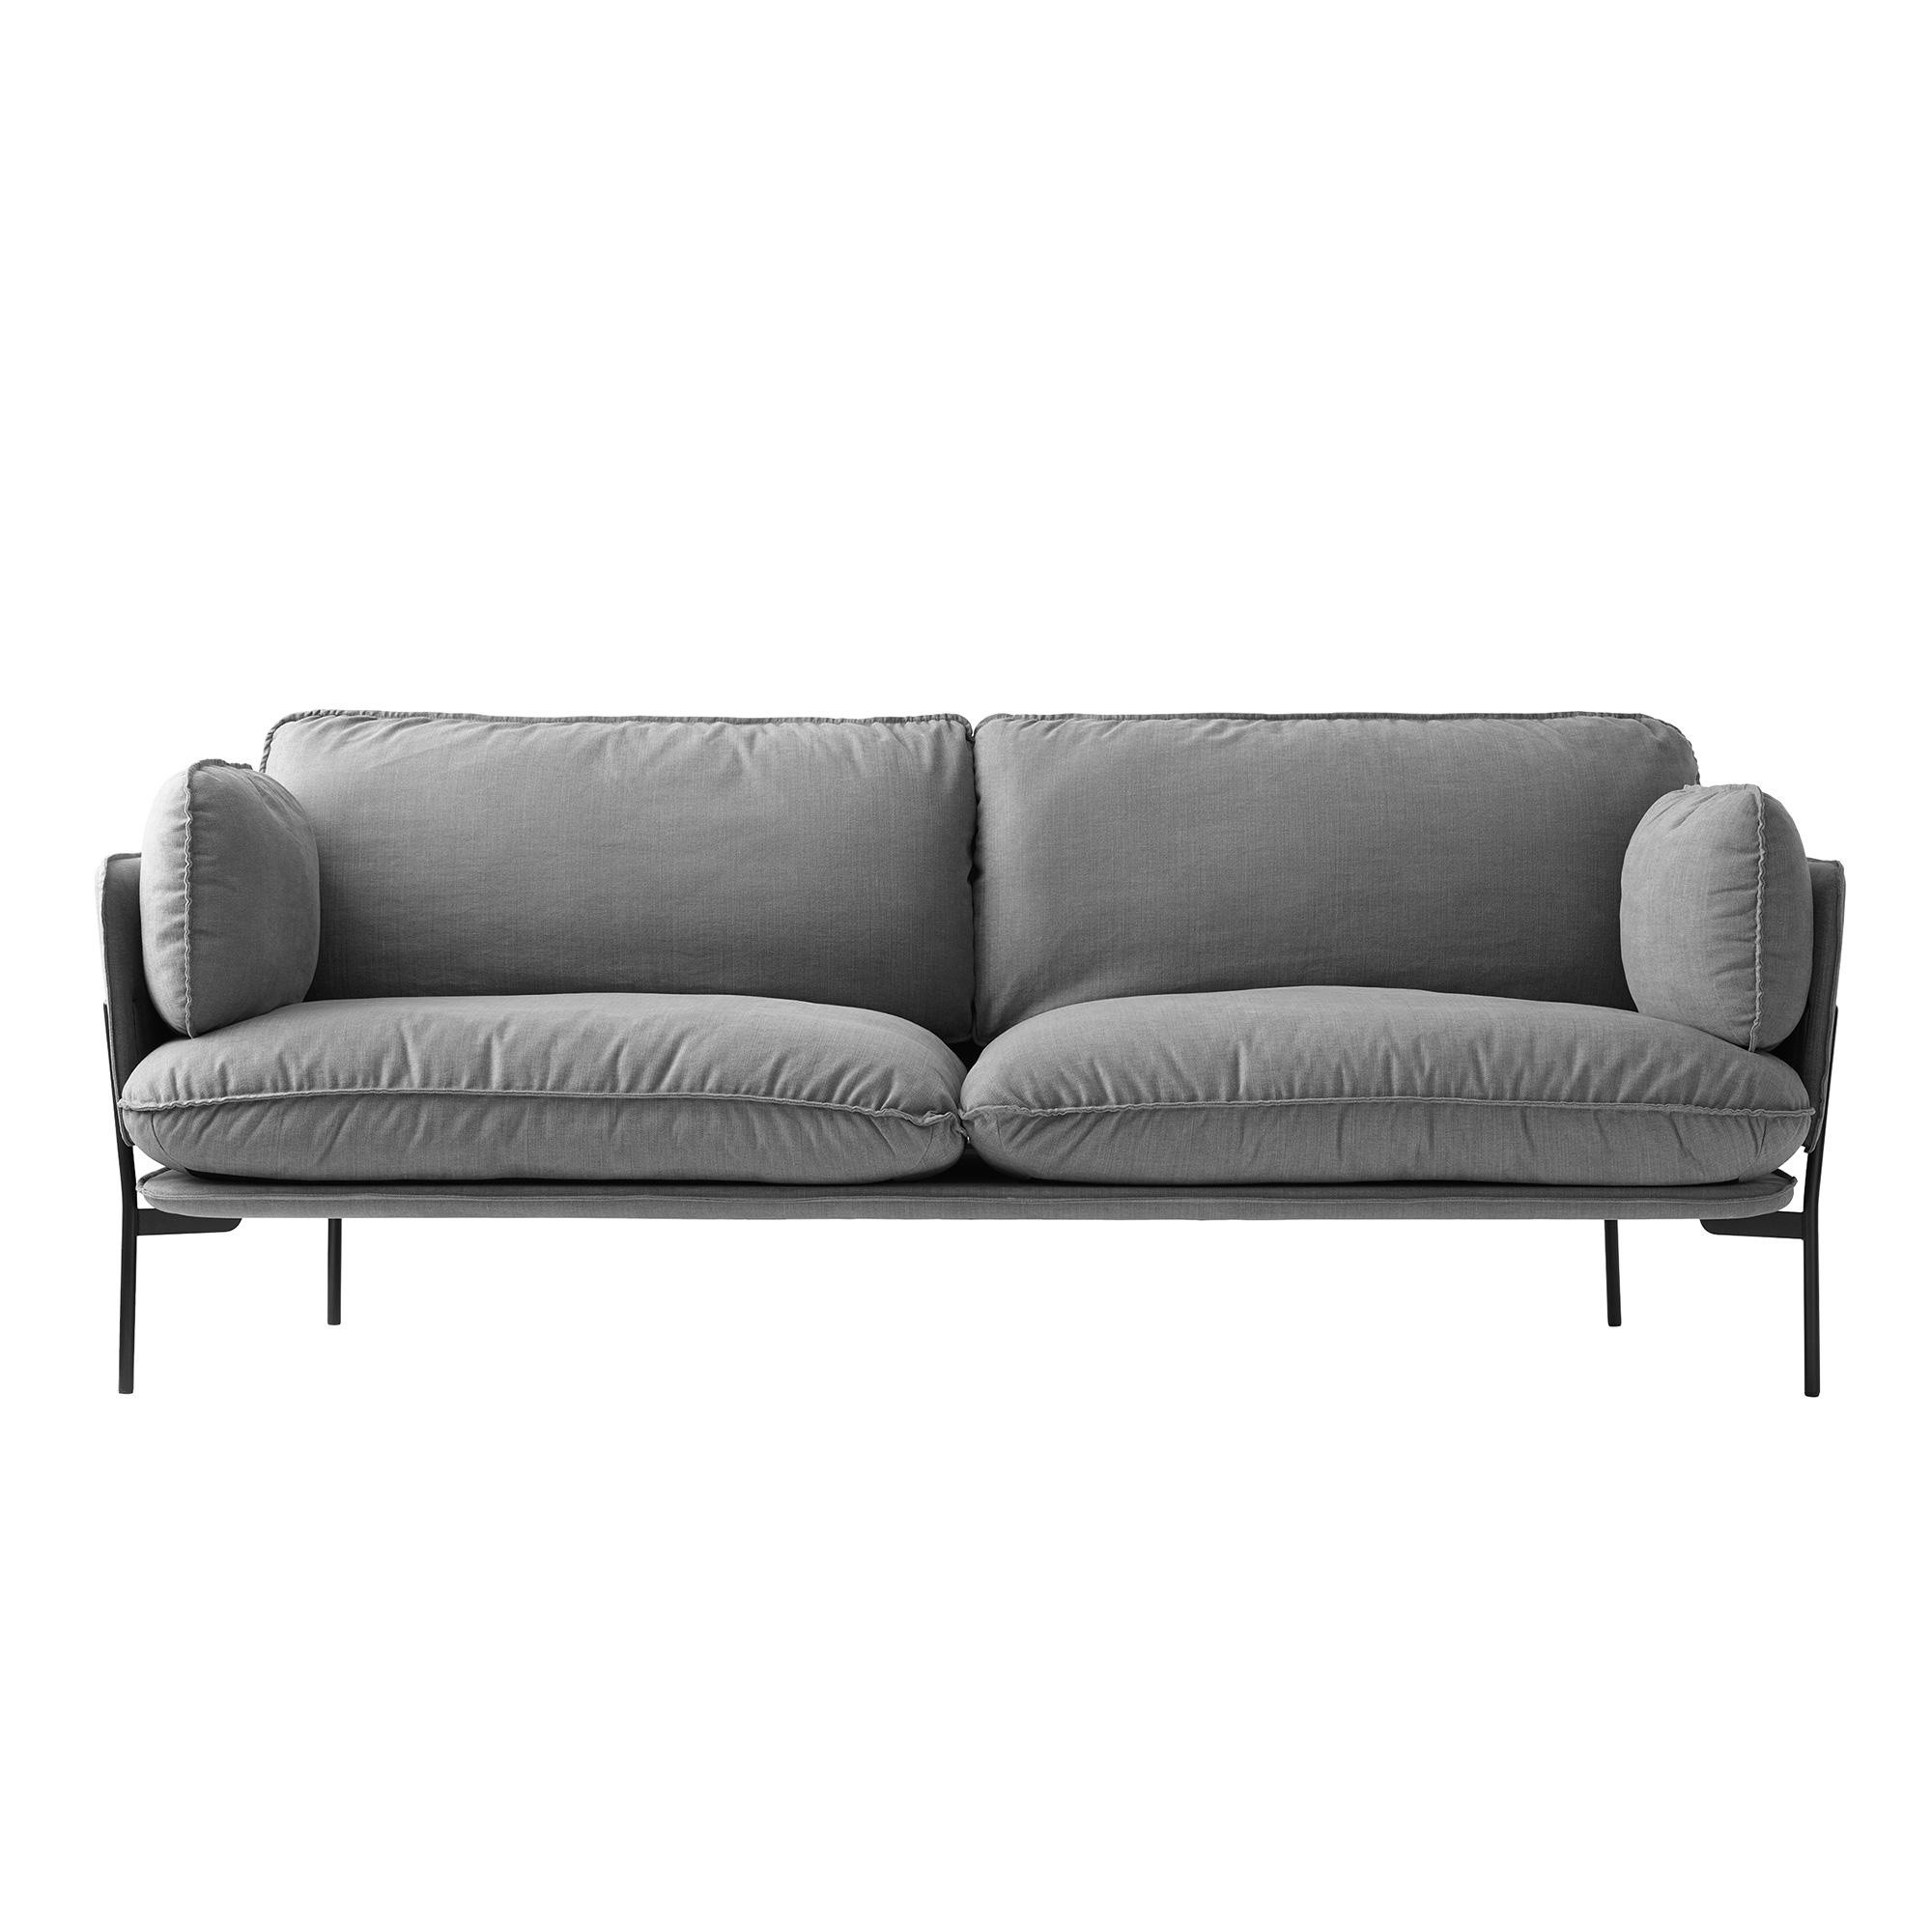 Sofa Grau Cloud Ln3 2 3 Seater Sofa